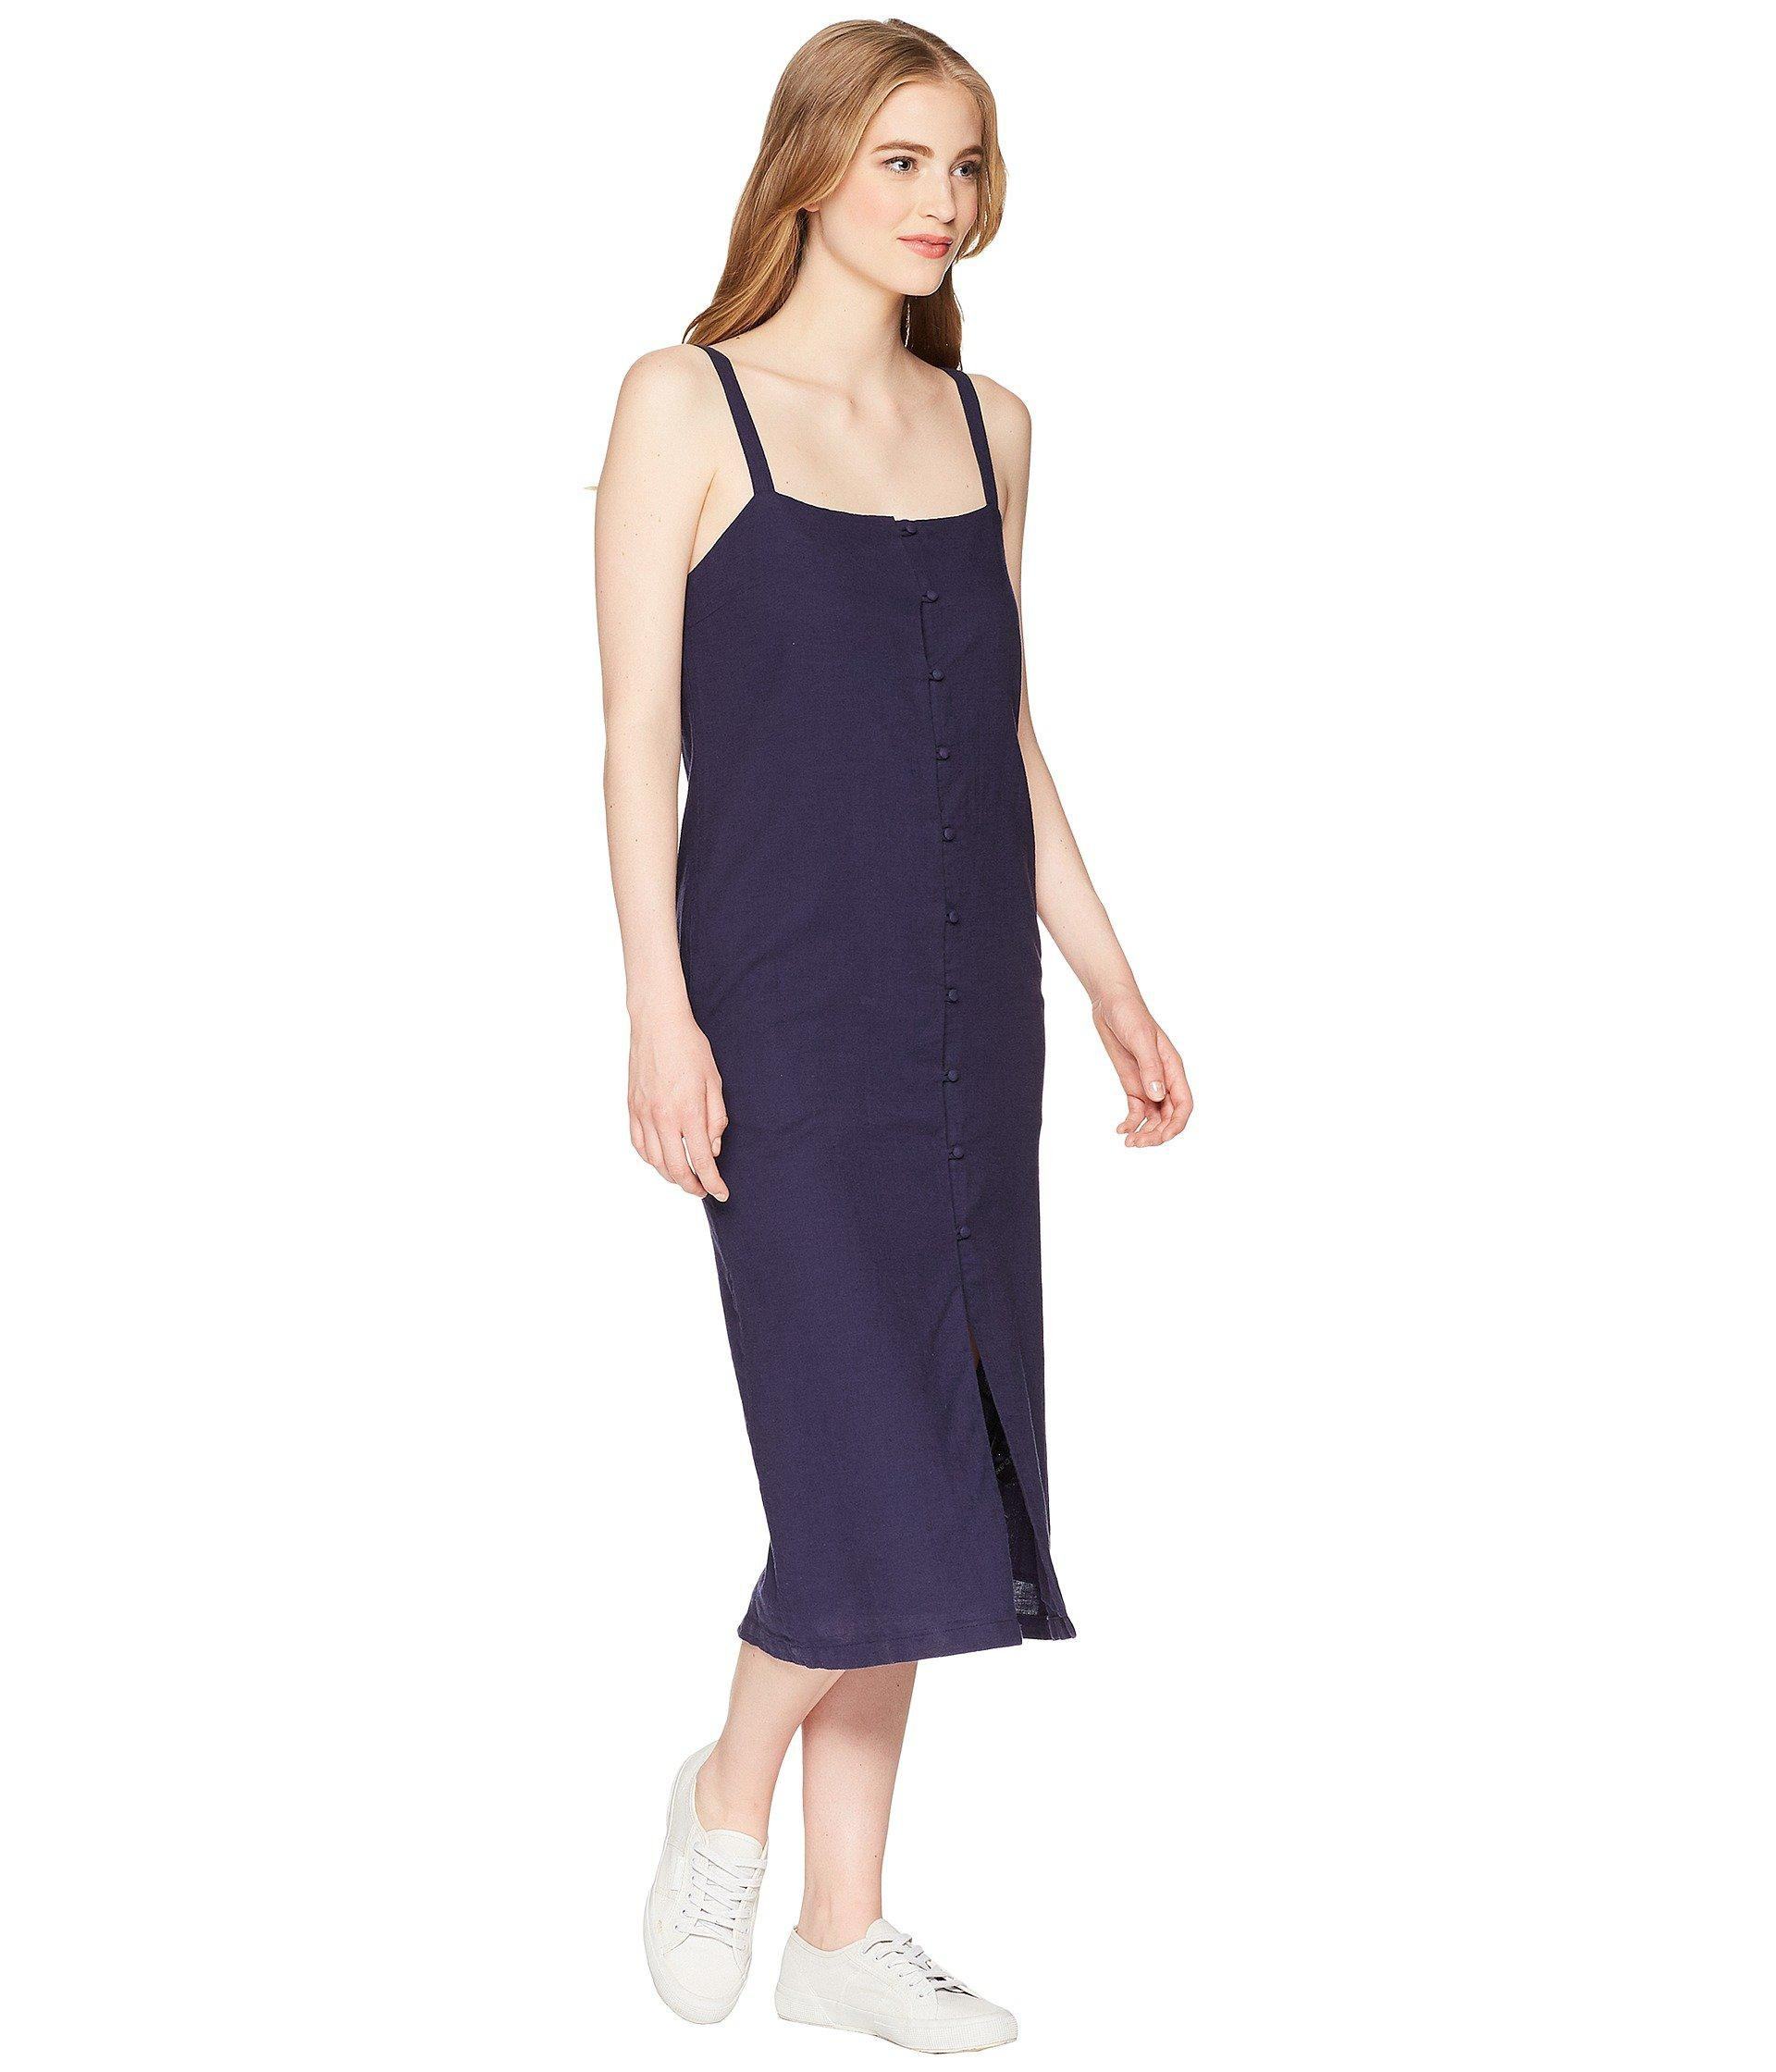 0cba579a76 Tavik - Blue Tara Midi Dress - Lyst. View fullscreen